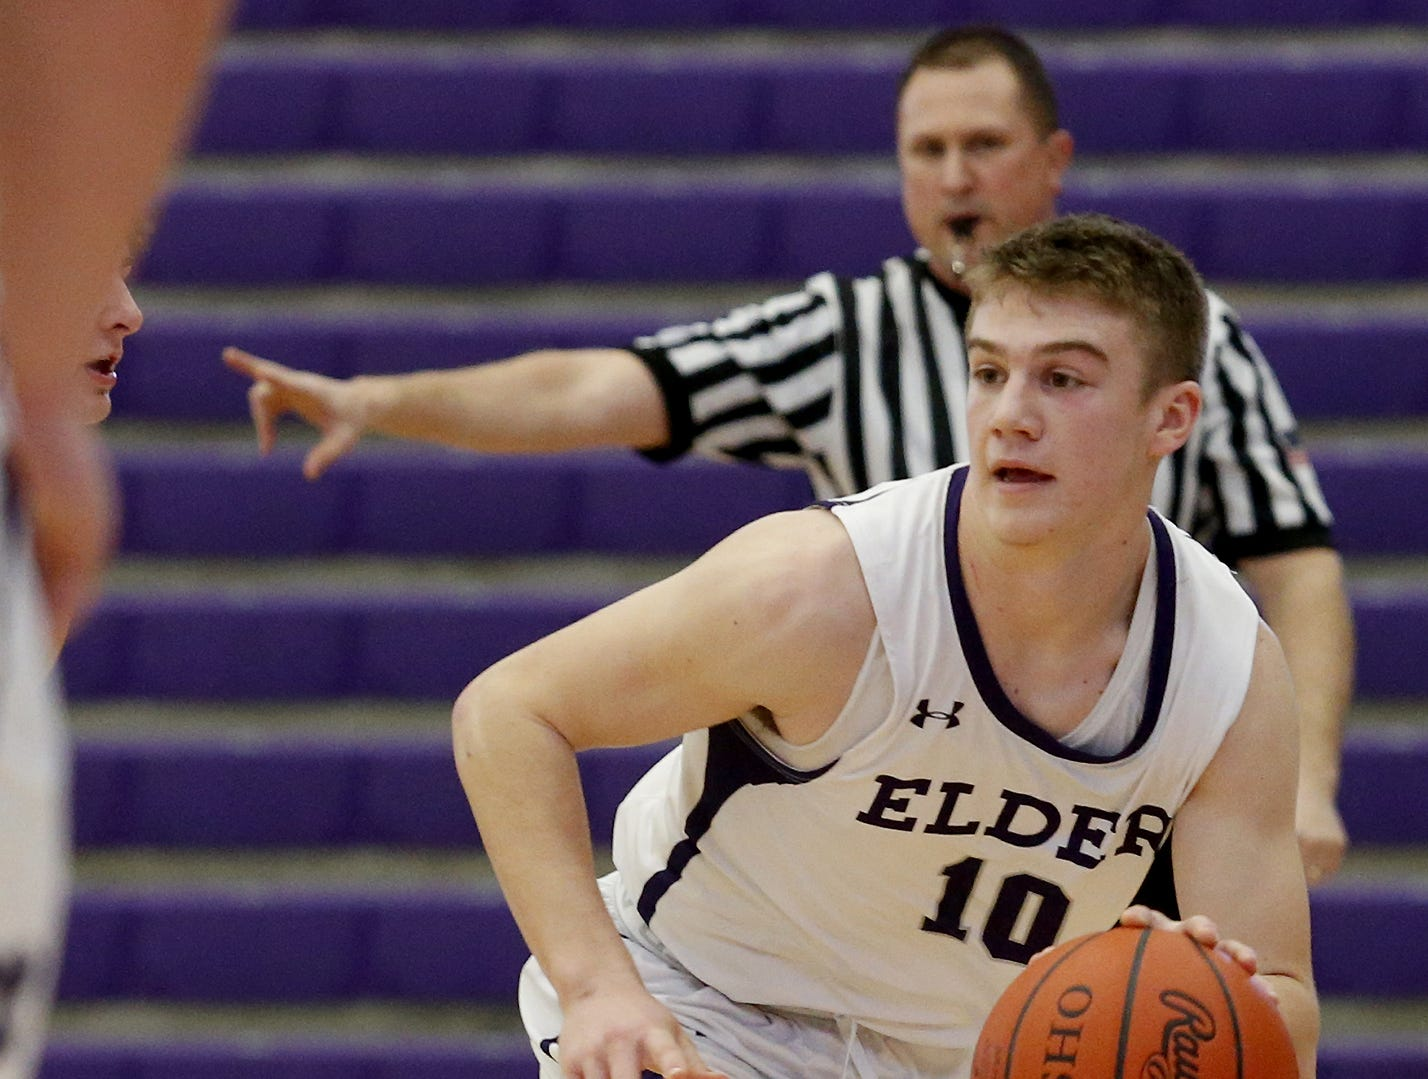 Elder guard Matthew Luebbe brings the ball up court against Covington Catholic during the Midwest King Classic at Jerry Lucas Court in Wade E. Miller Arena in Middletown Saturday, Jan. 19, 2019.